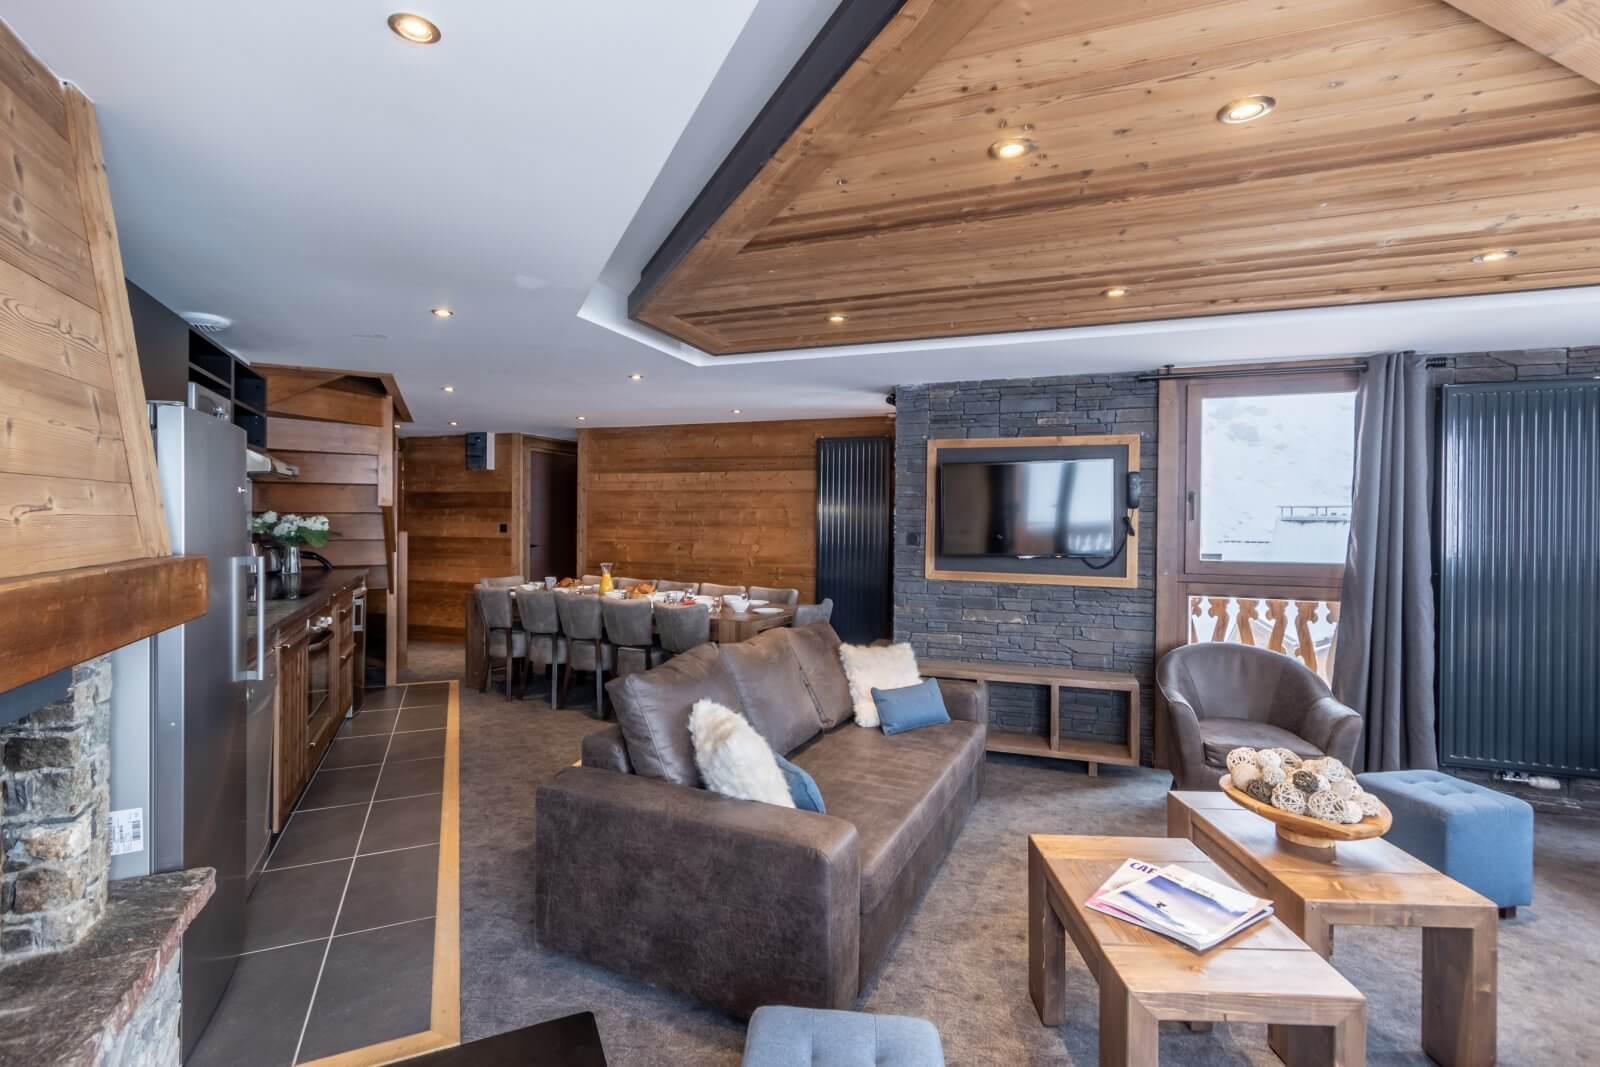 The 12 person apartment Chalet Altitude Val Thorens